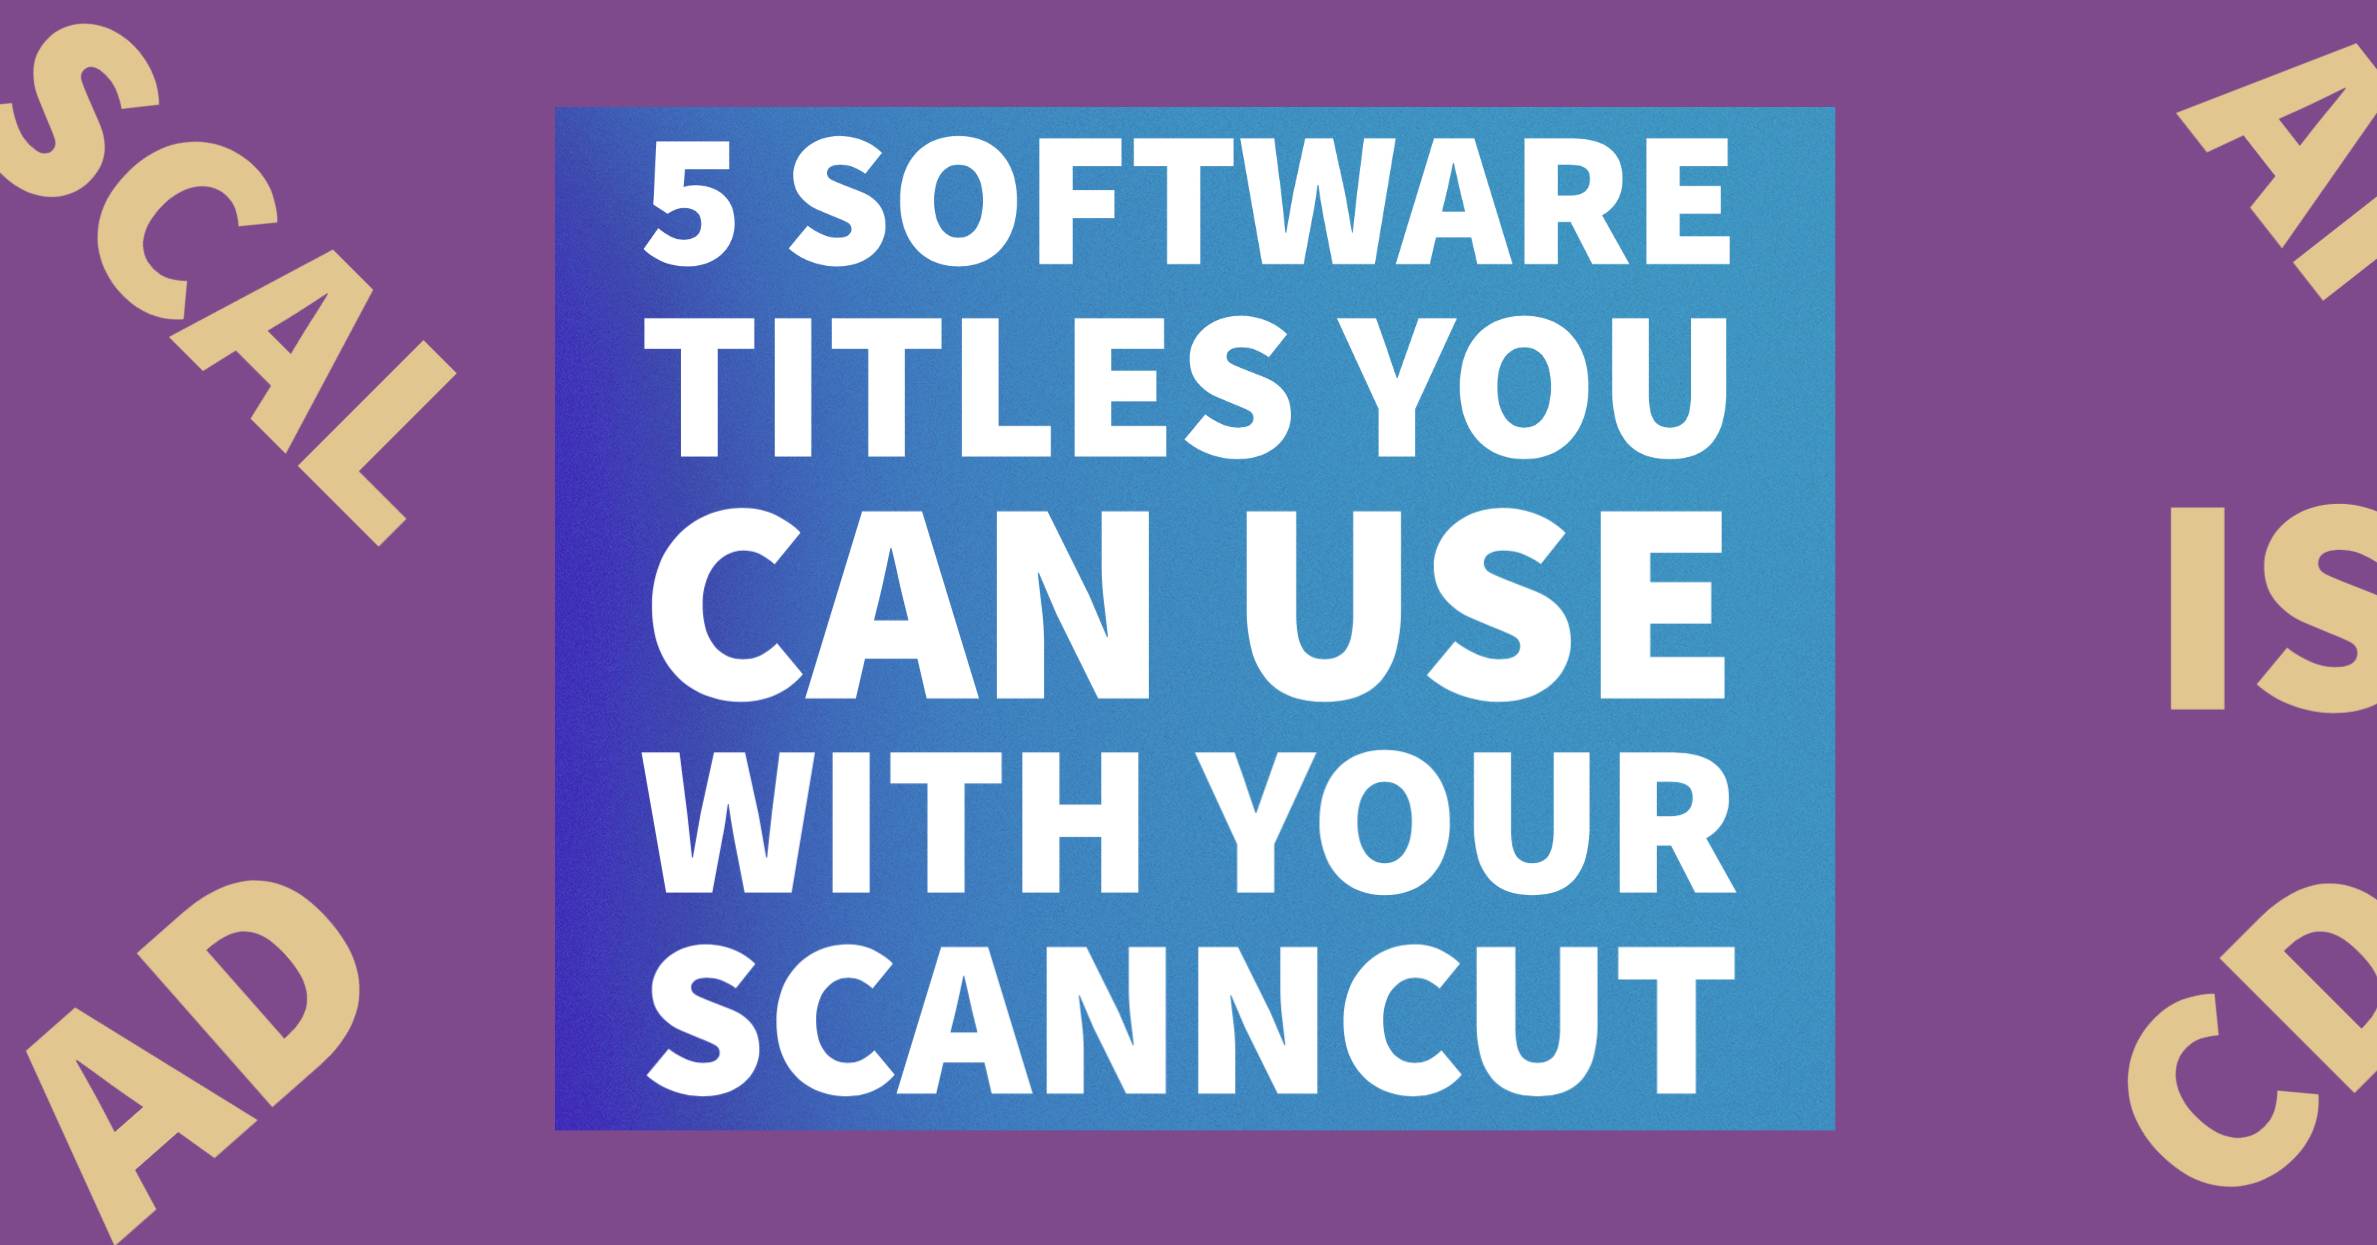 5 software titles you can use with your ScanNCut